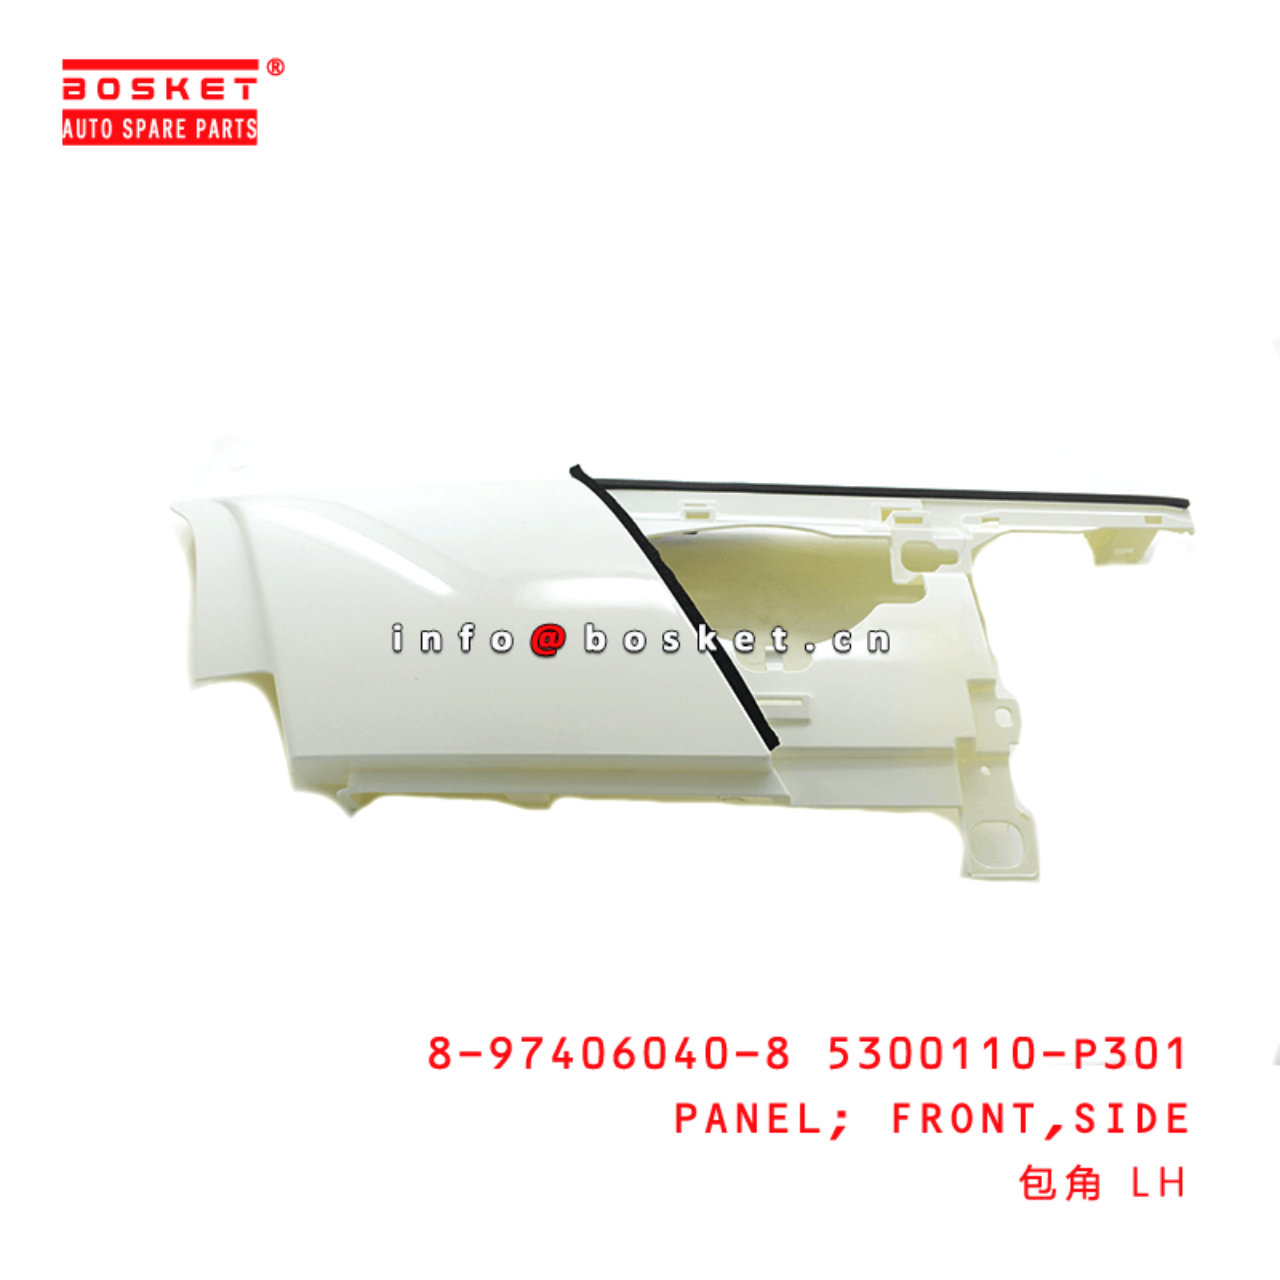 8-97406040-8 Side Front Panel 8974060408 Suitable for ISUZU 700P